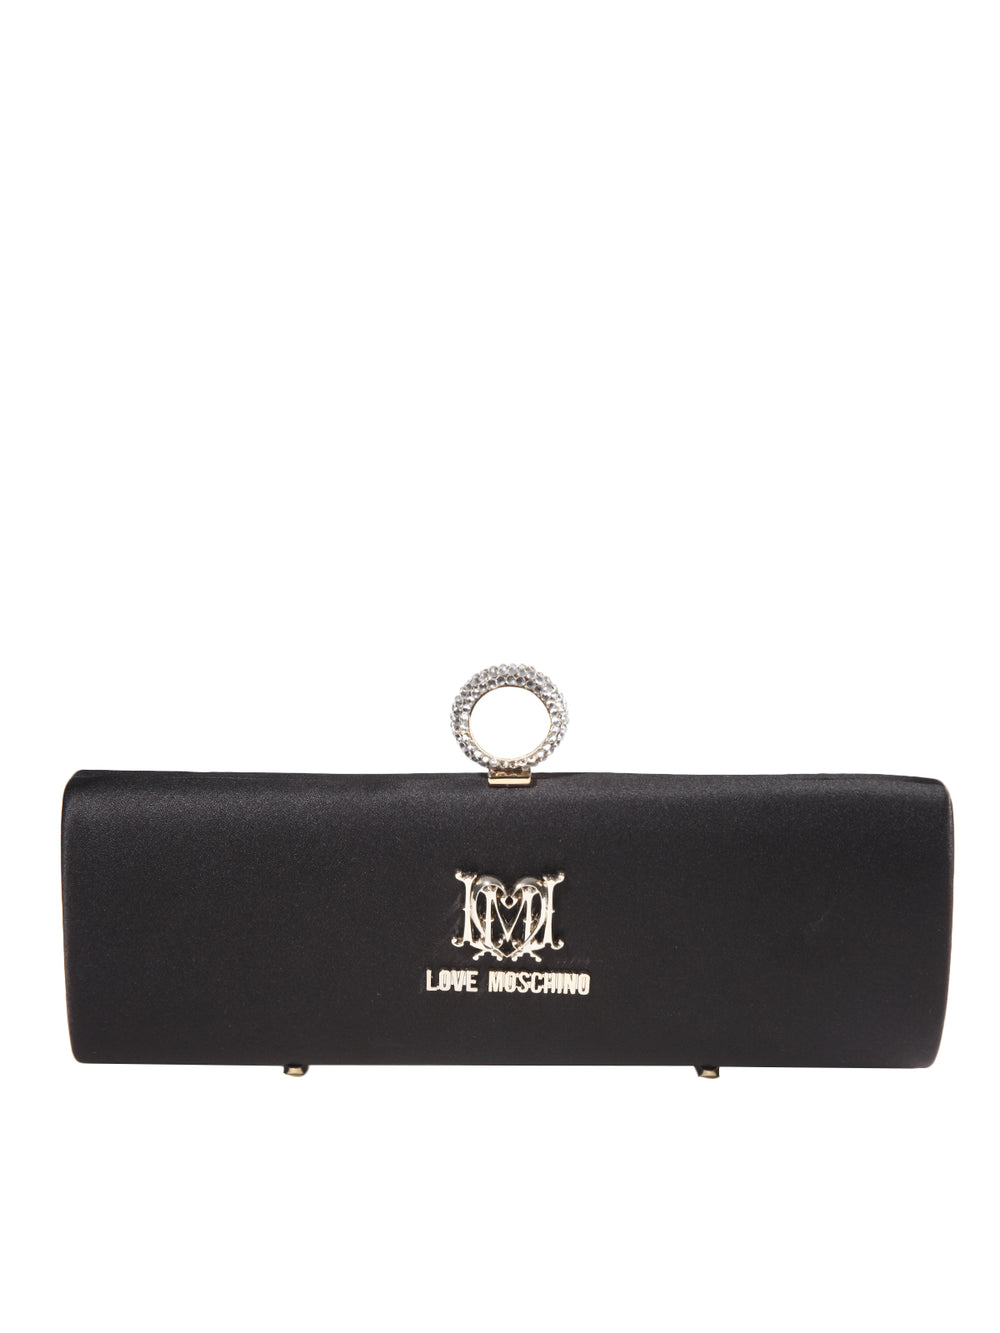 Borsa Satin Nero Clutch, LOVE MOSCHINO - elilhaam.com